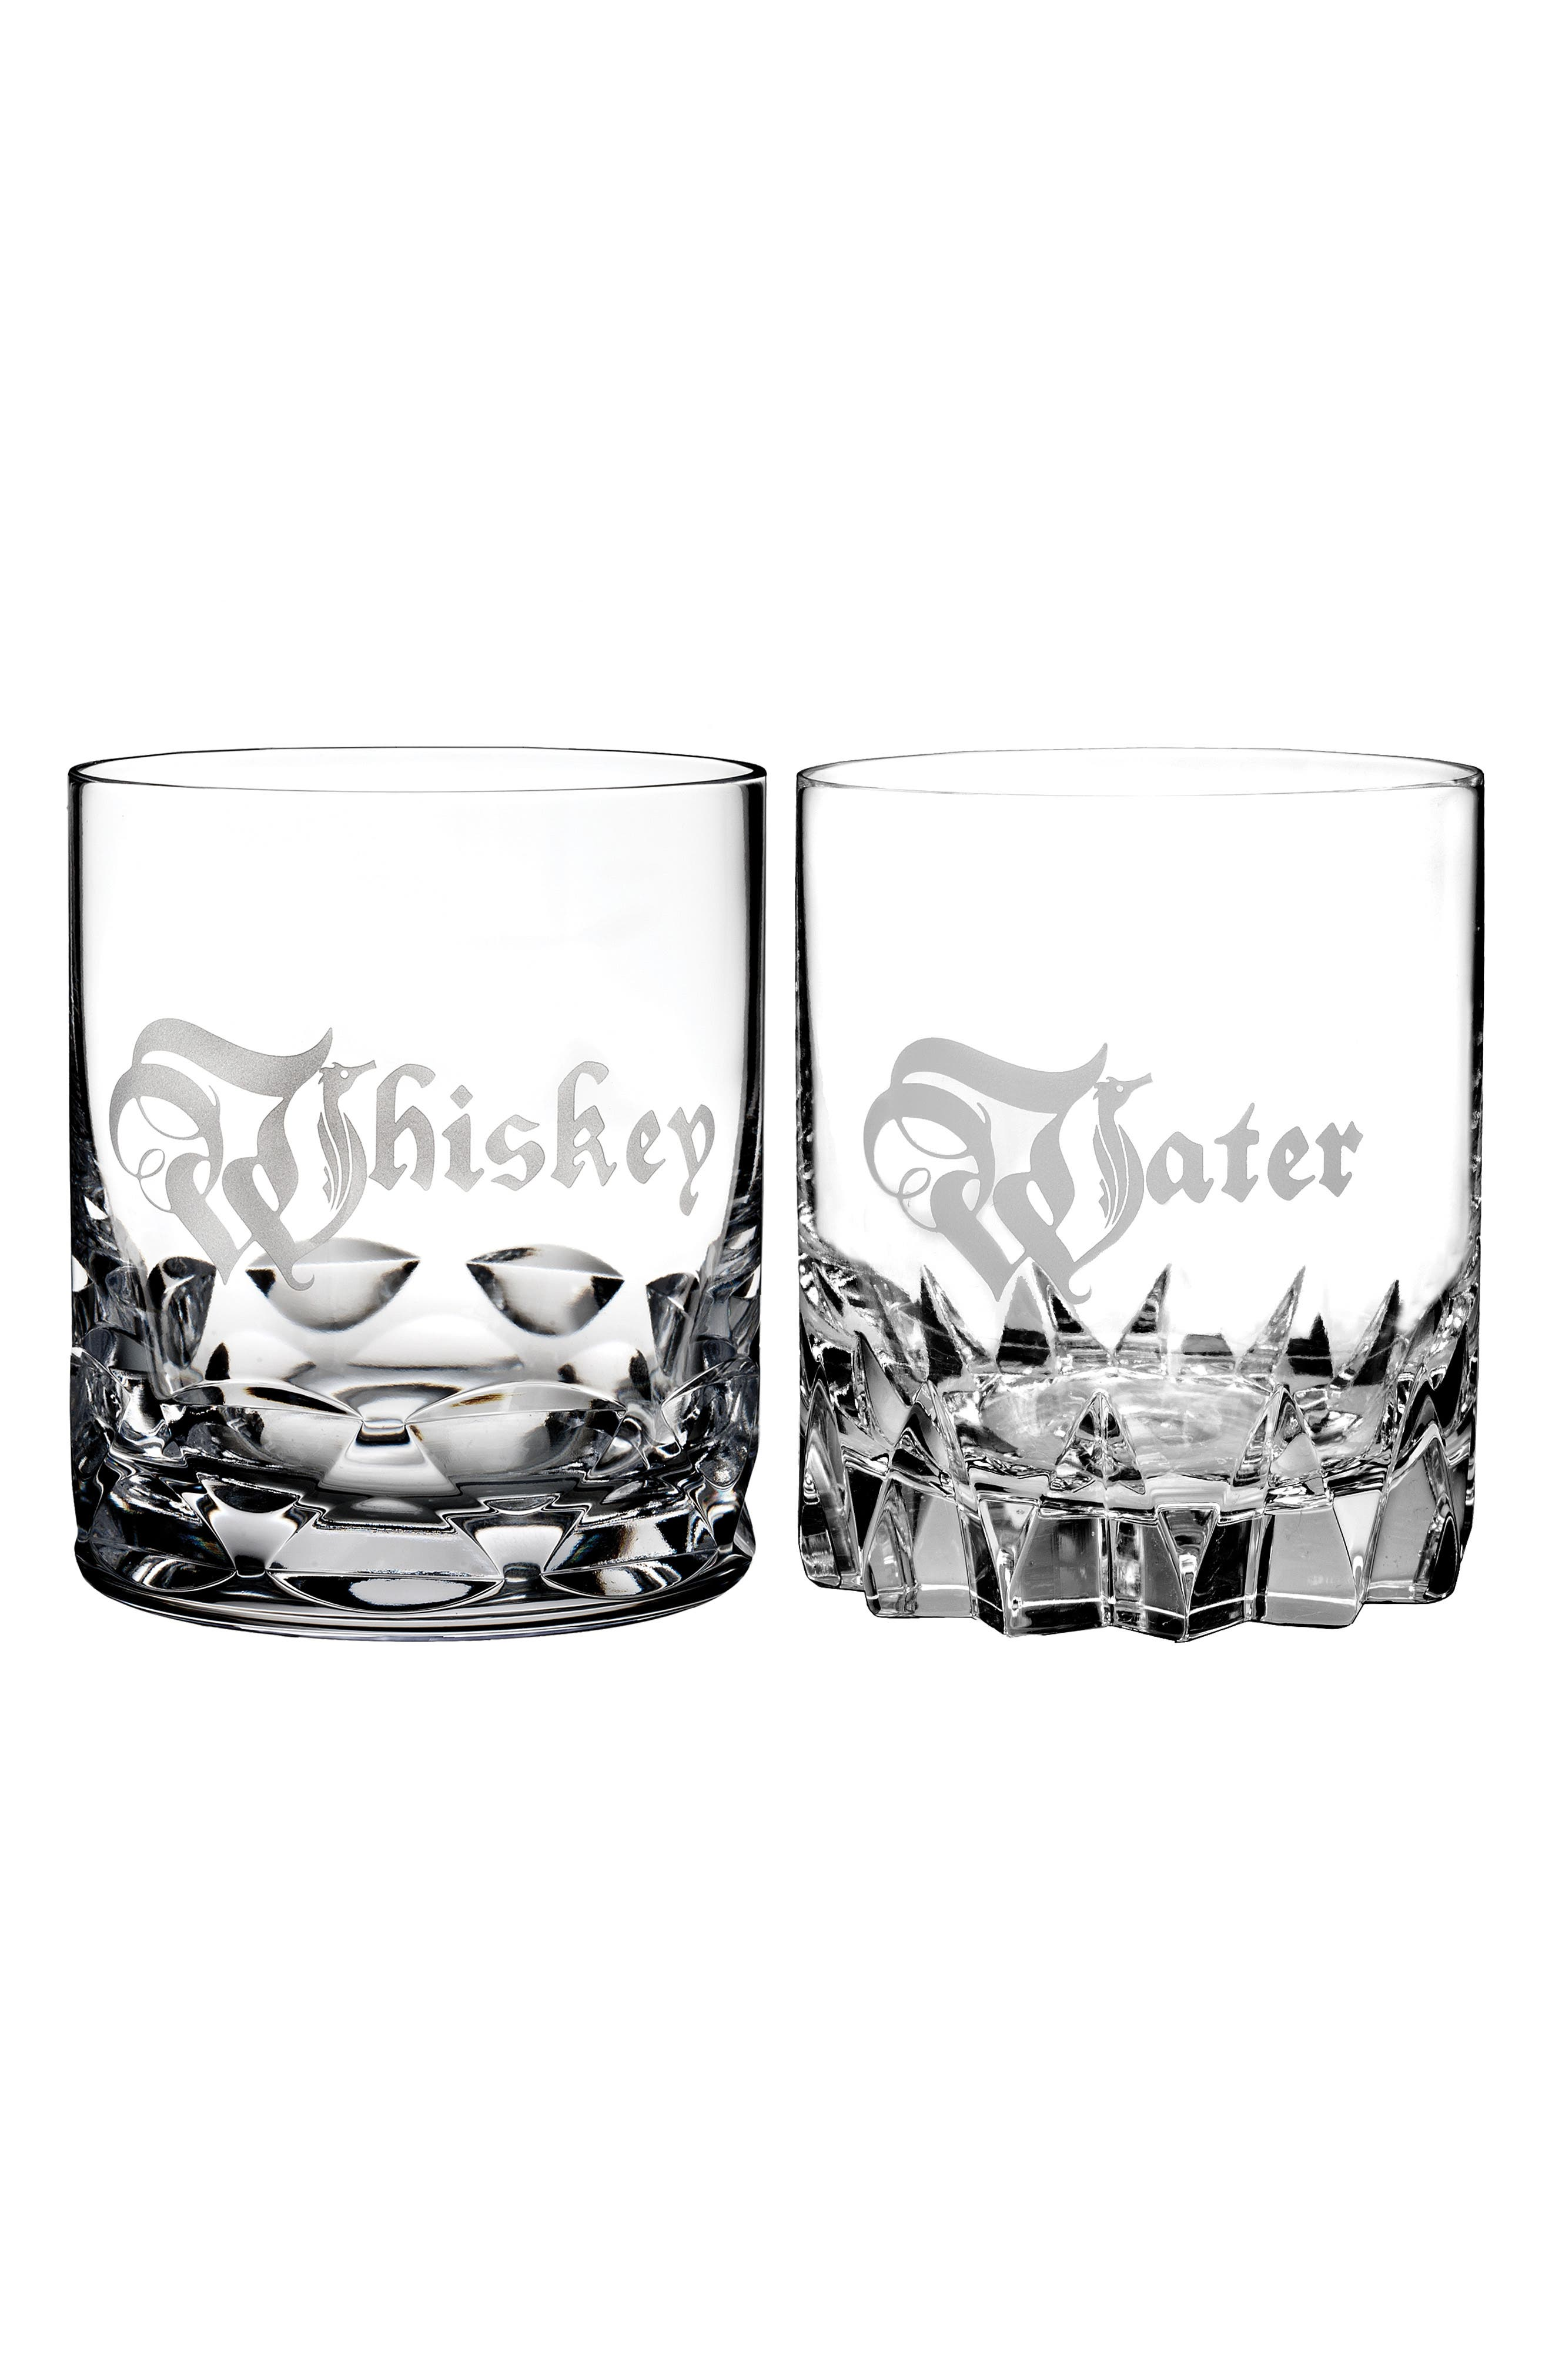 Short Stories Whiskey & Water Set of 2 Lead Crystal Double Old Fashioned Glasses,                         Main,                         color, CRYSTAL